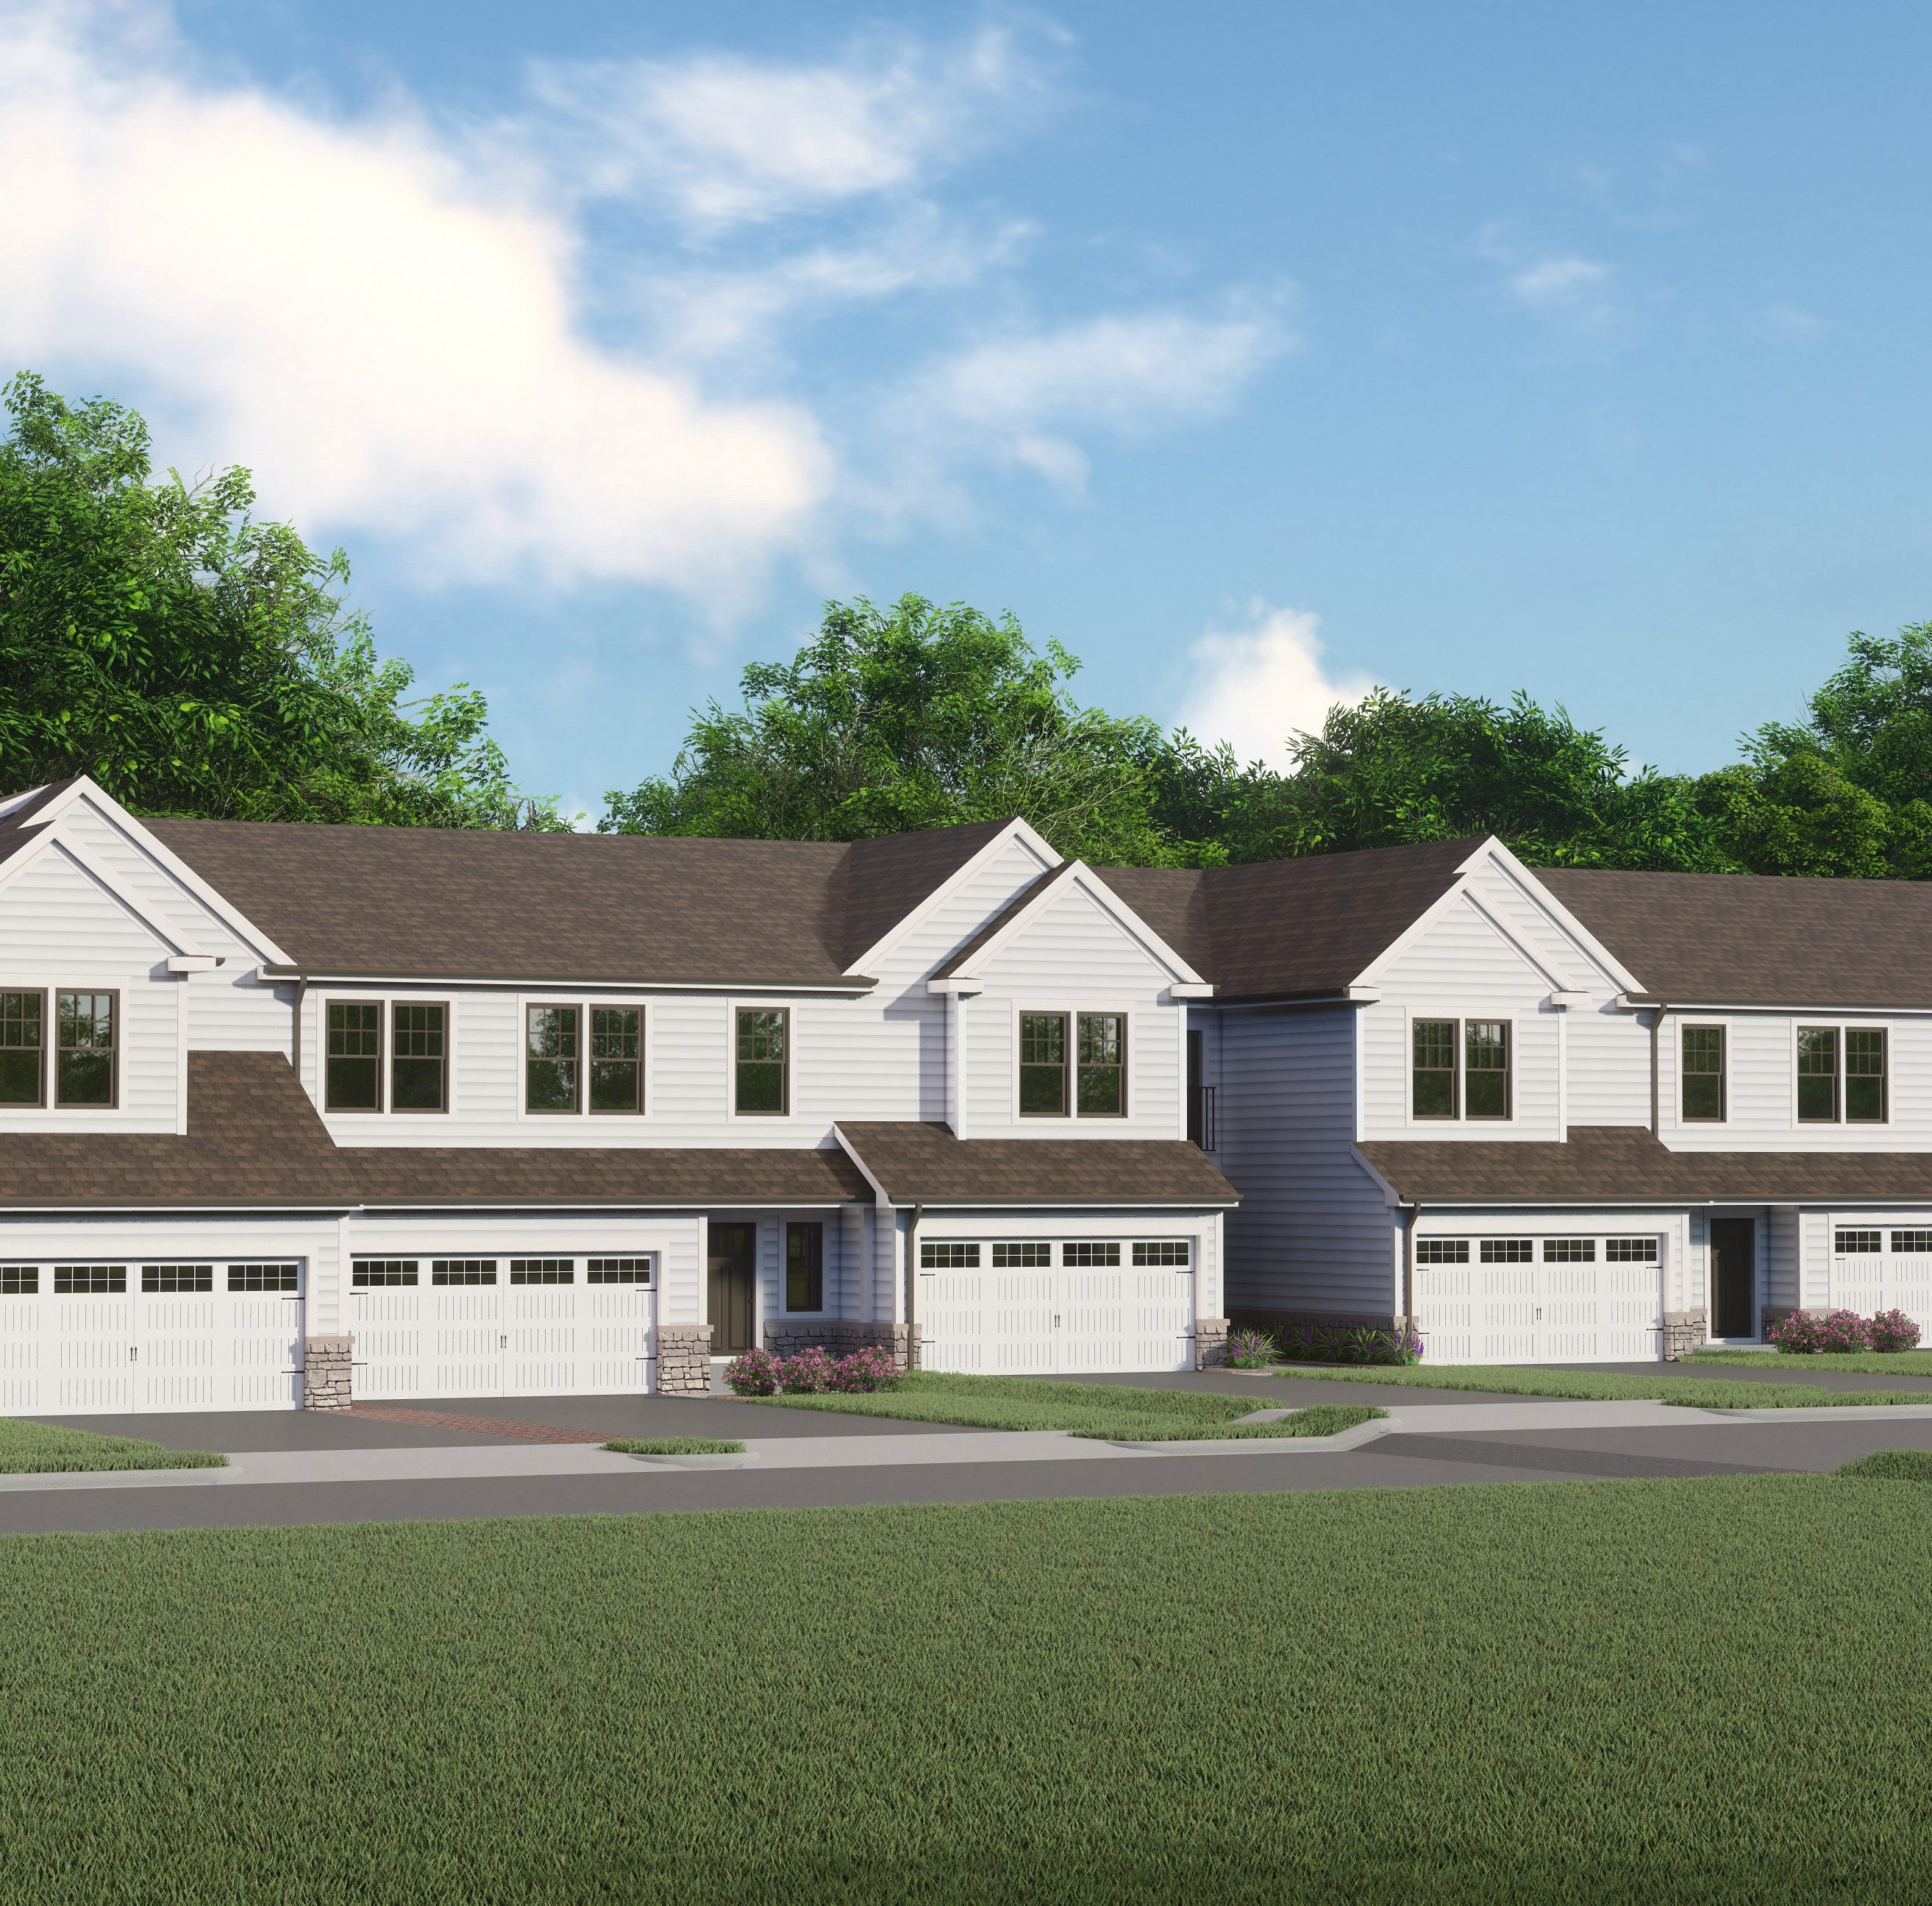 First townhome building released at High Point at Panther Valley